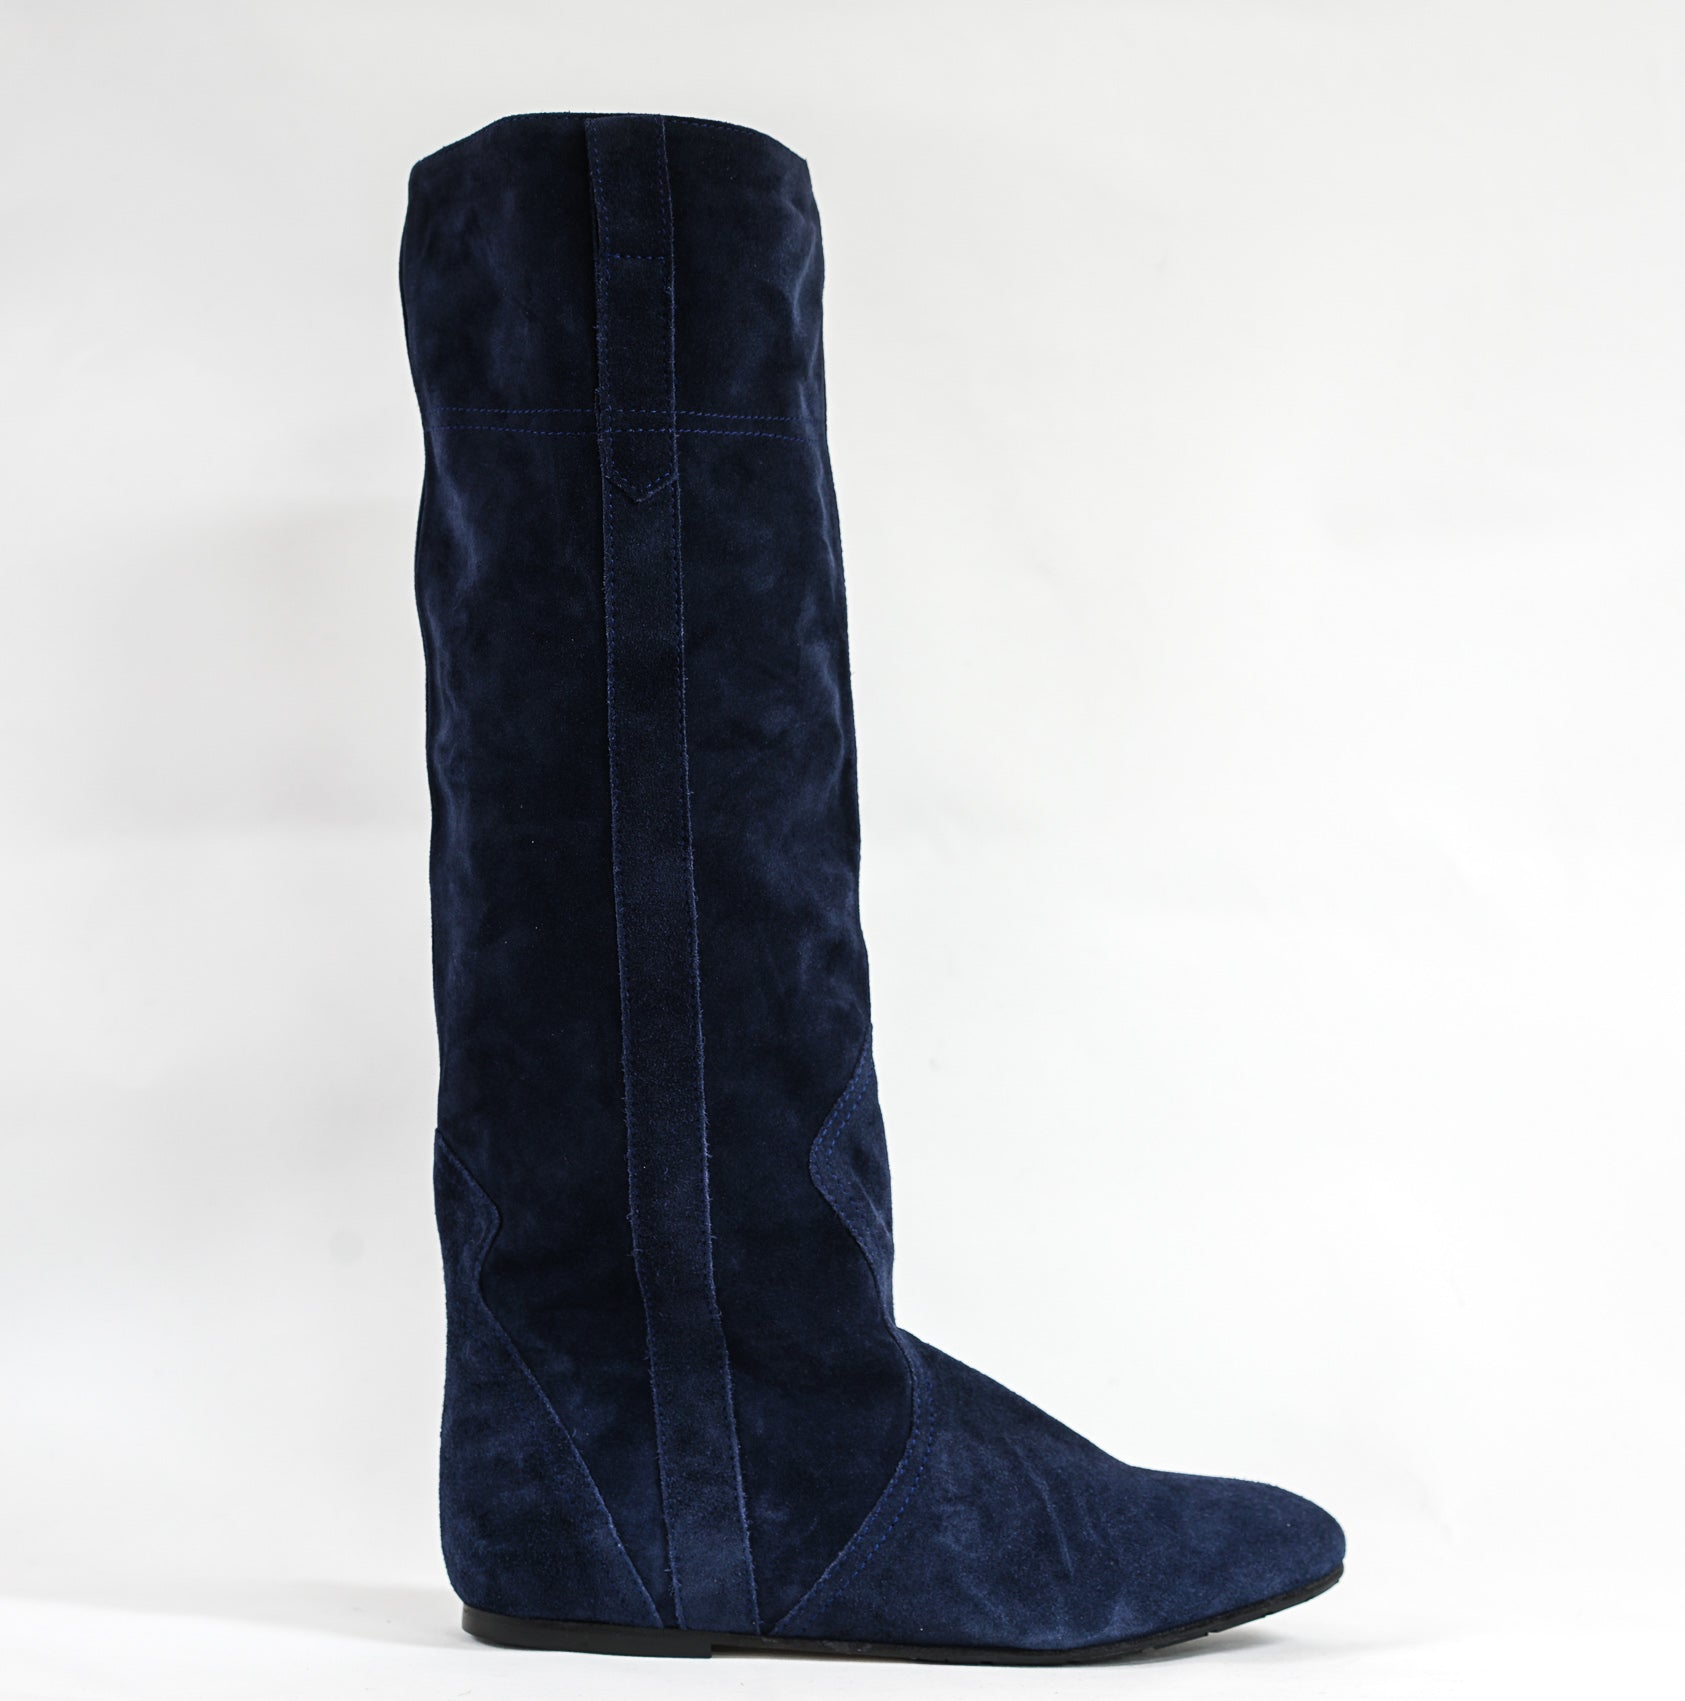 Fabio Rusconi Blue Suede Slouch Boot F98801